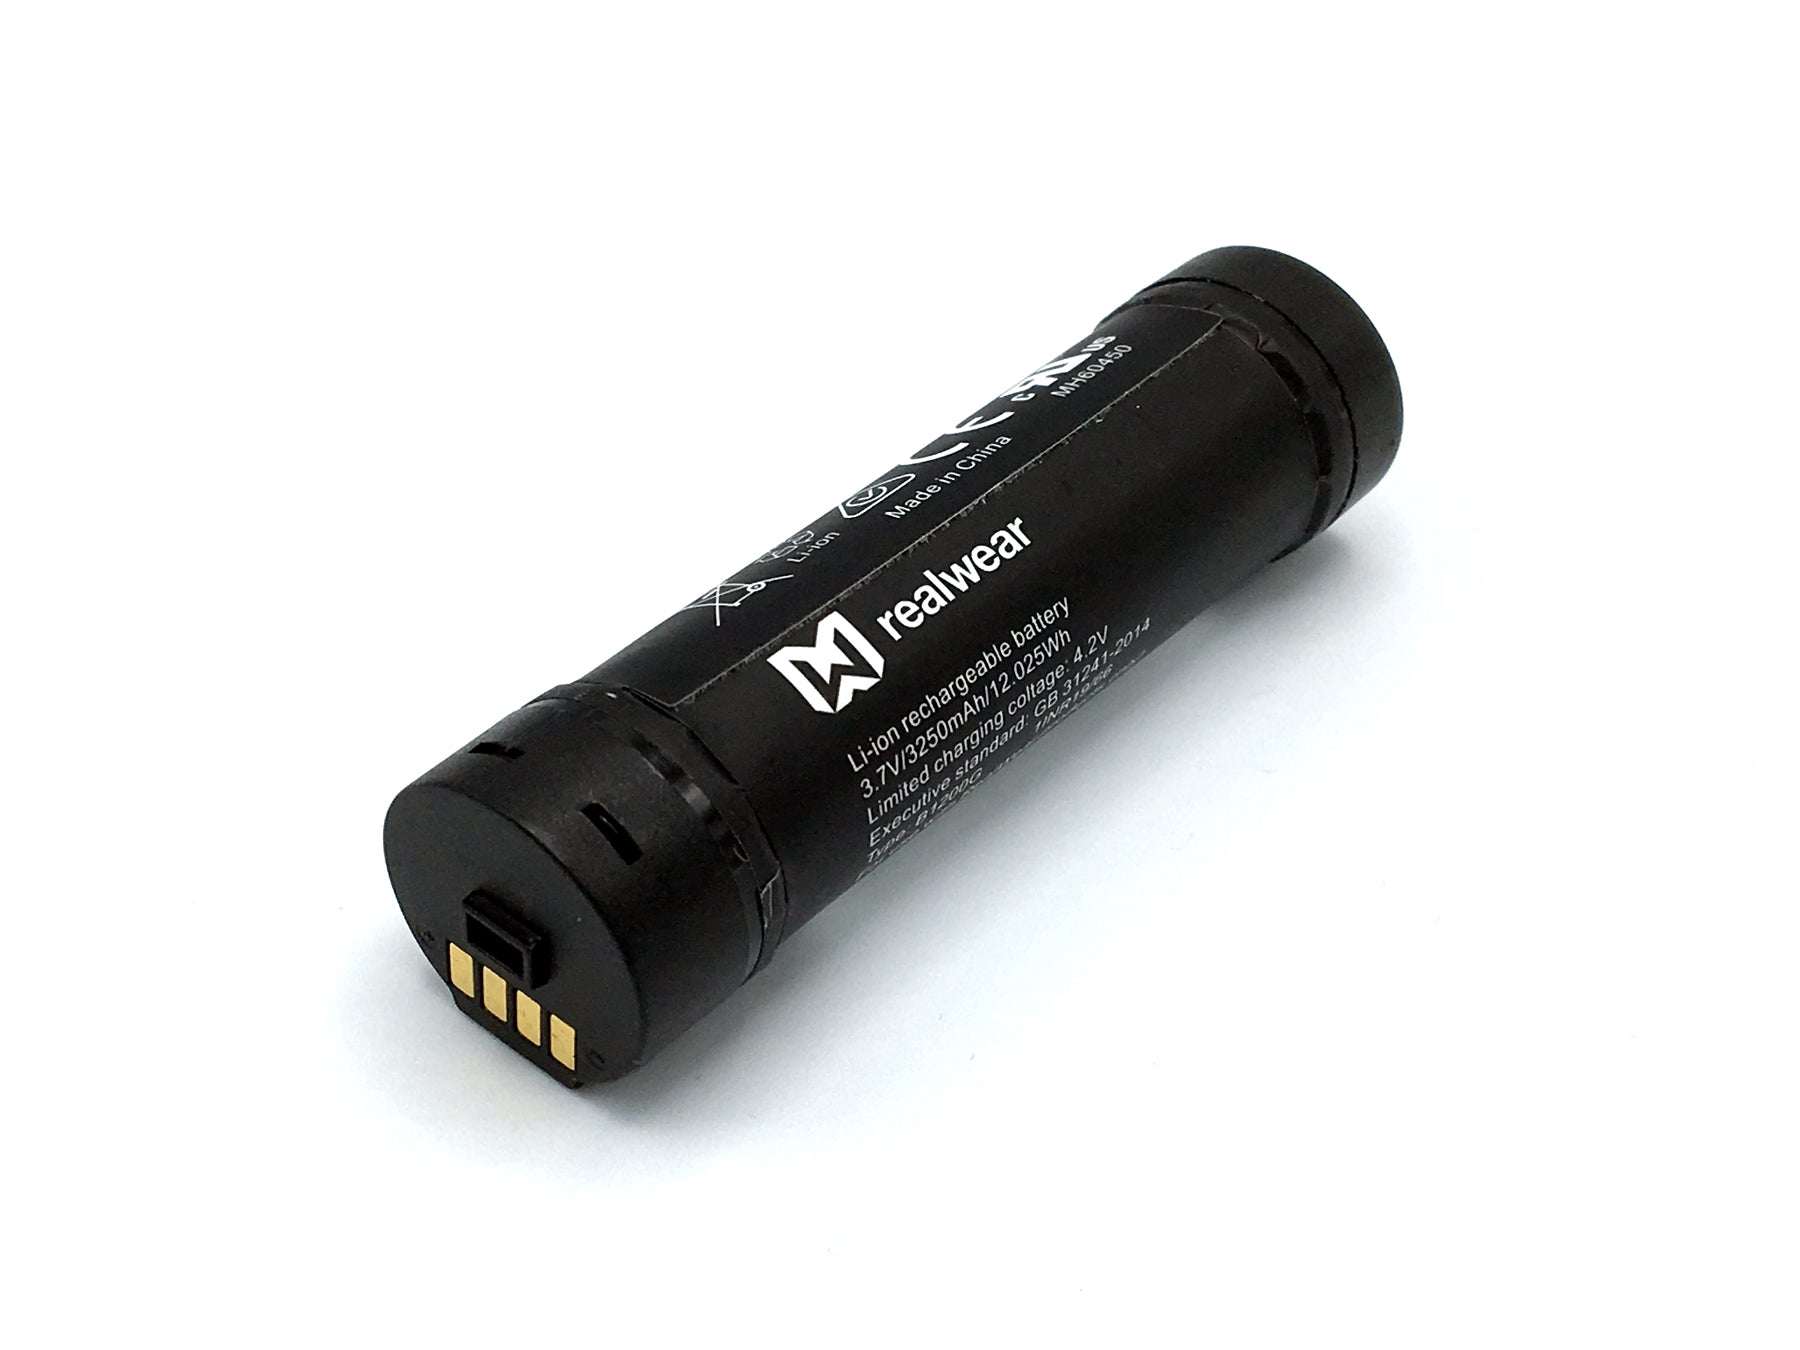 HMT-1 Spare Battery